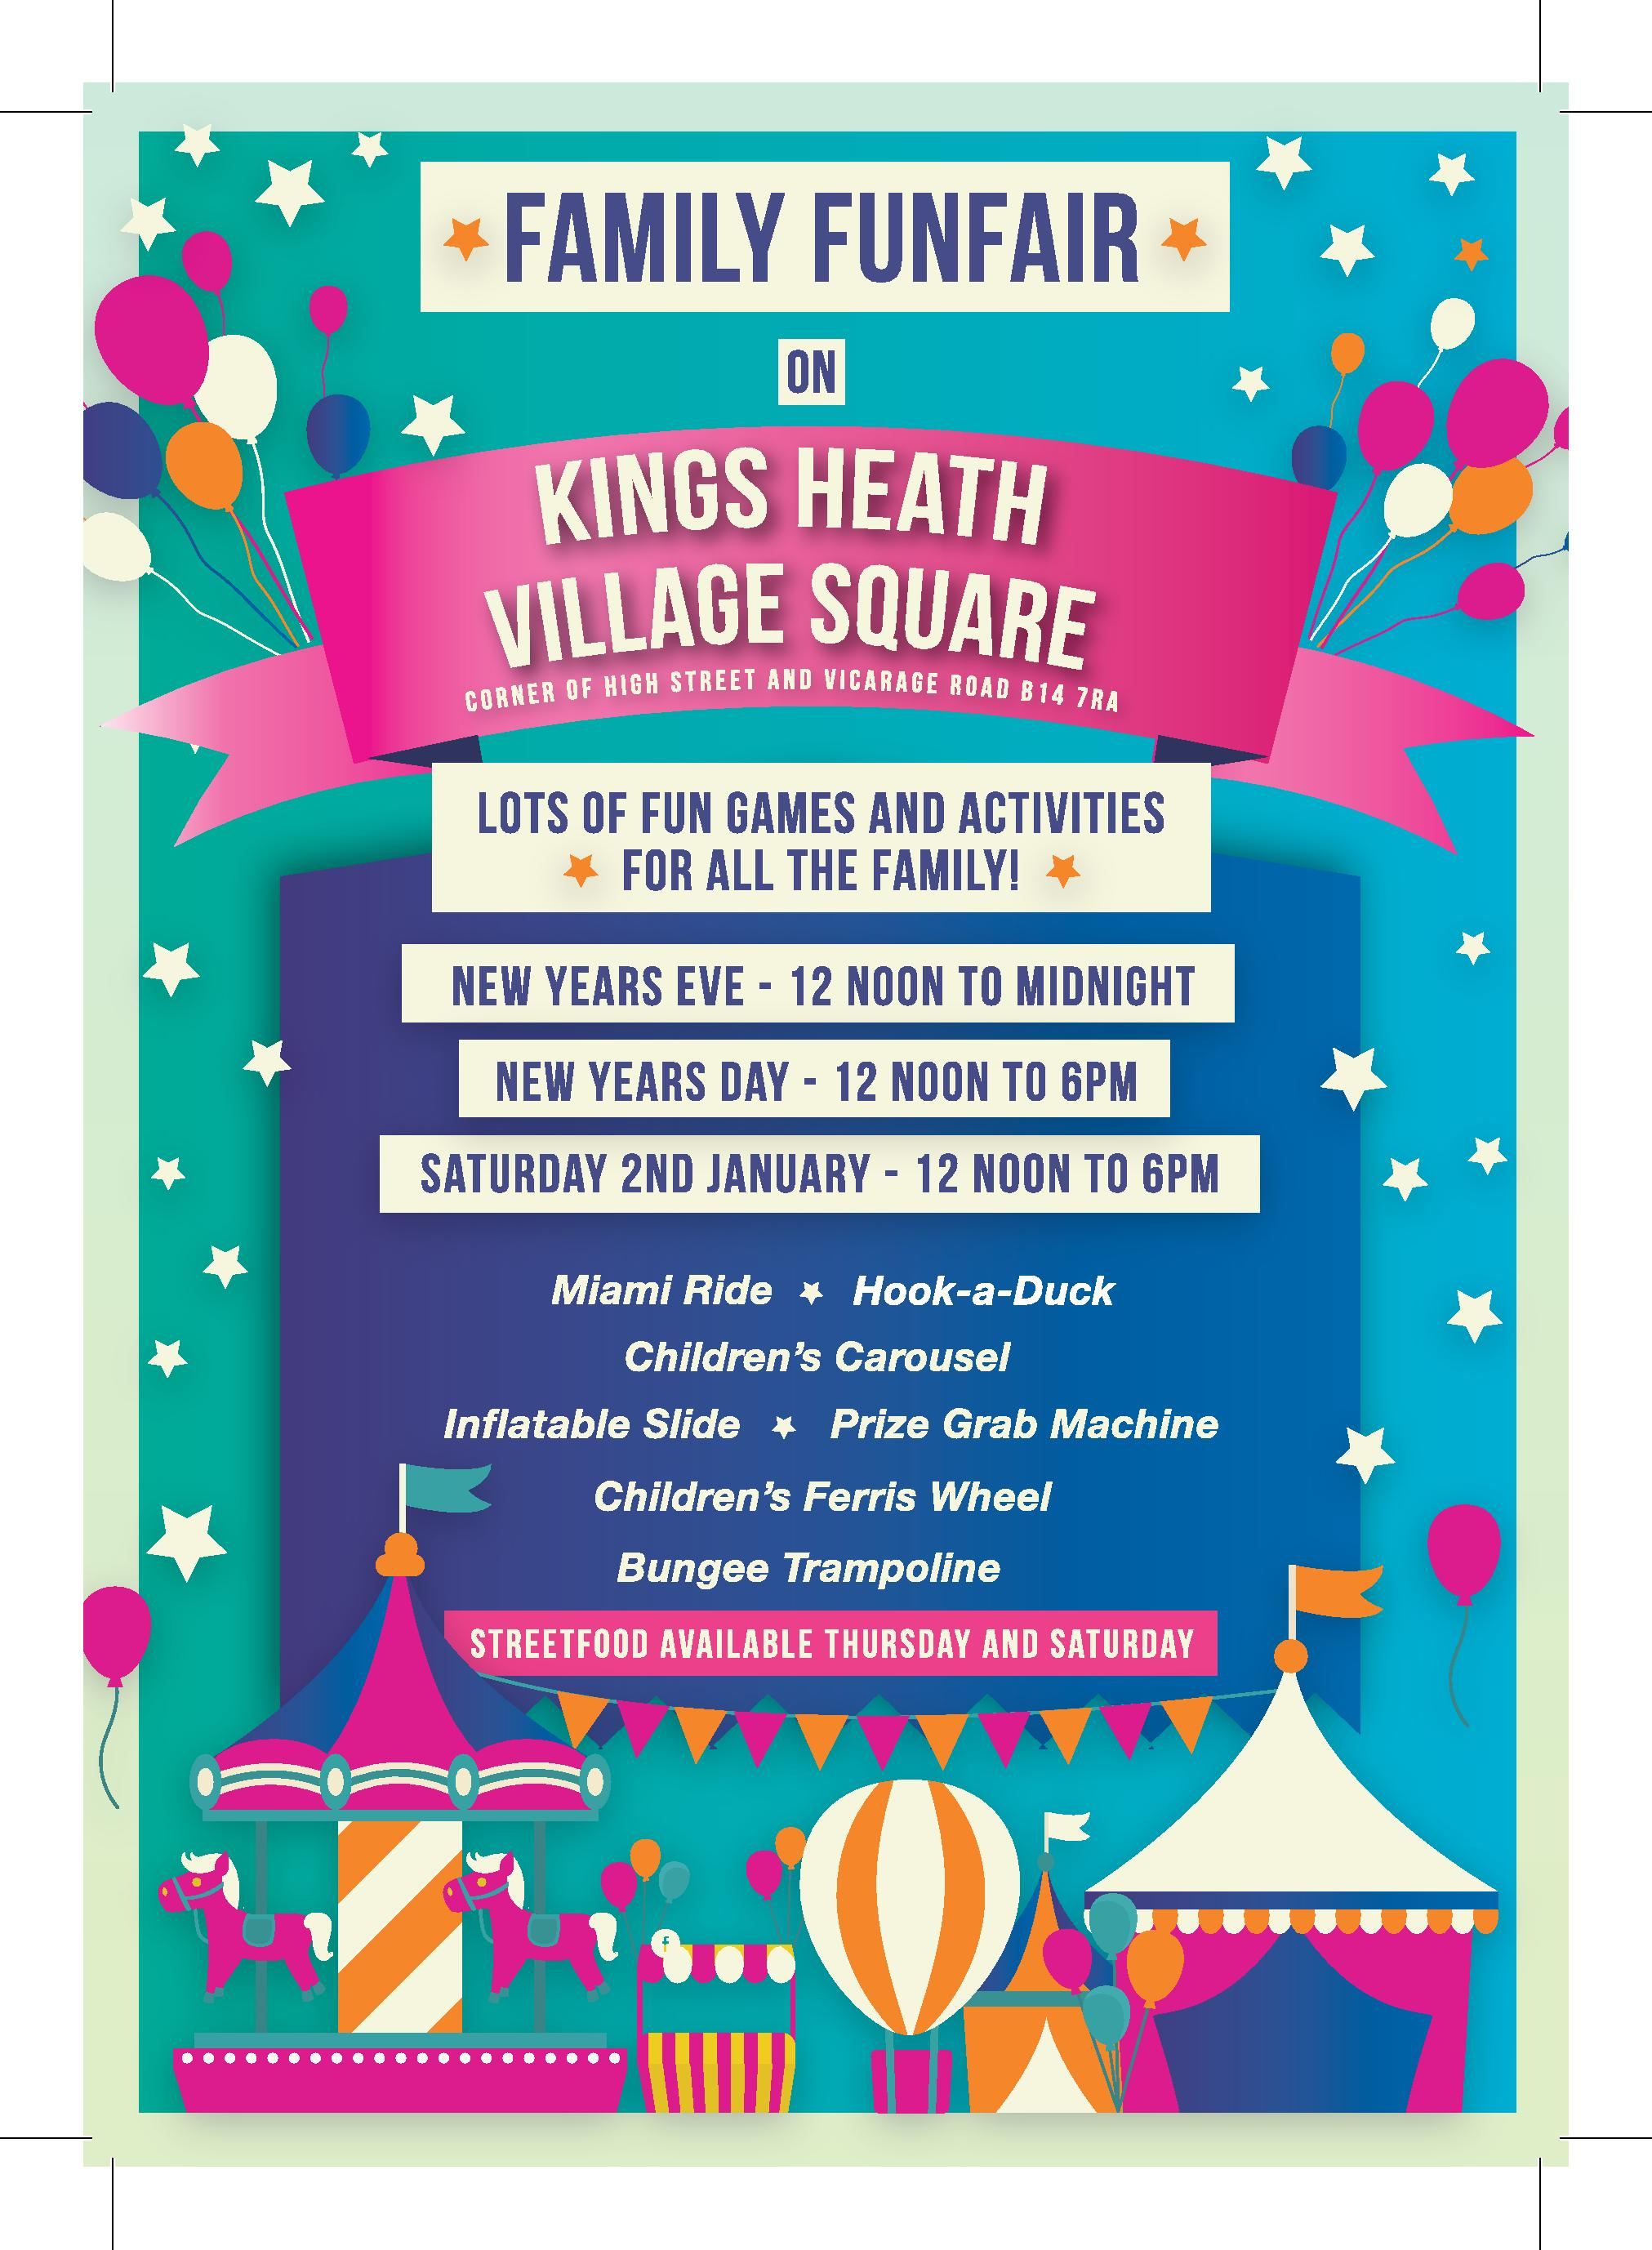 New Years Eve Family Event - All Saints Centre Kings Heath